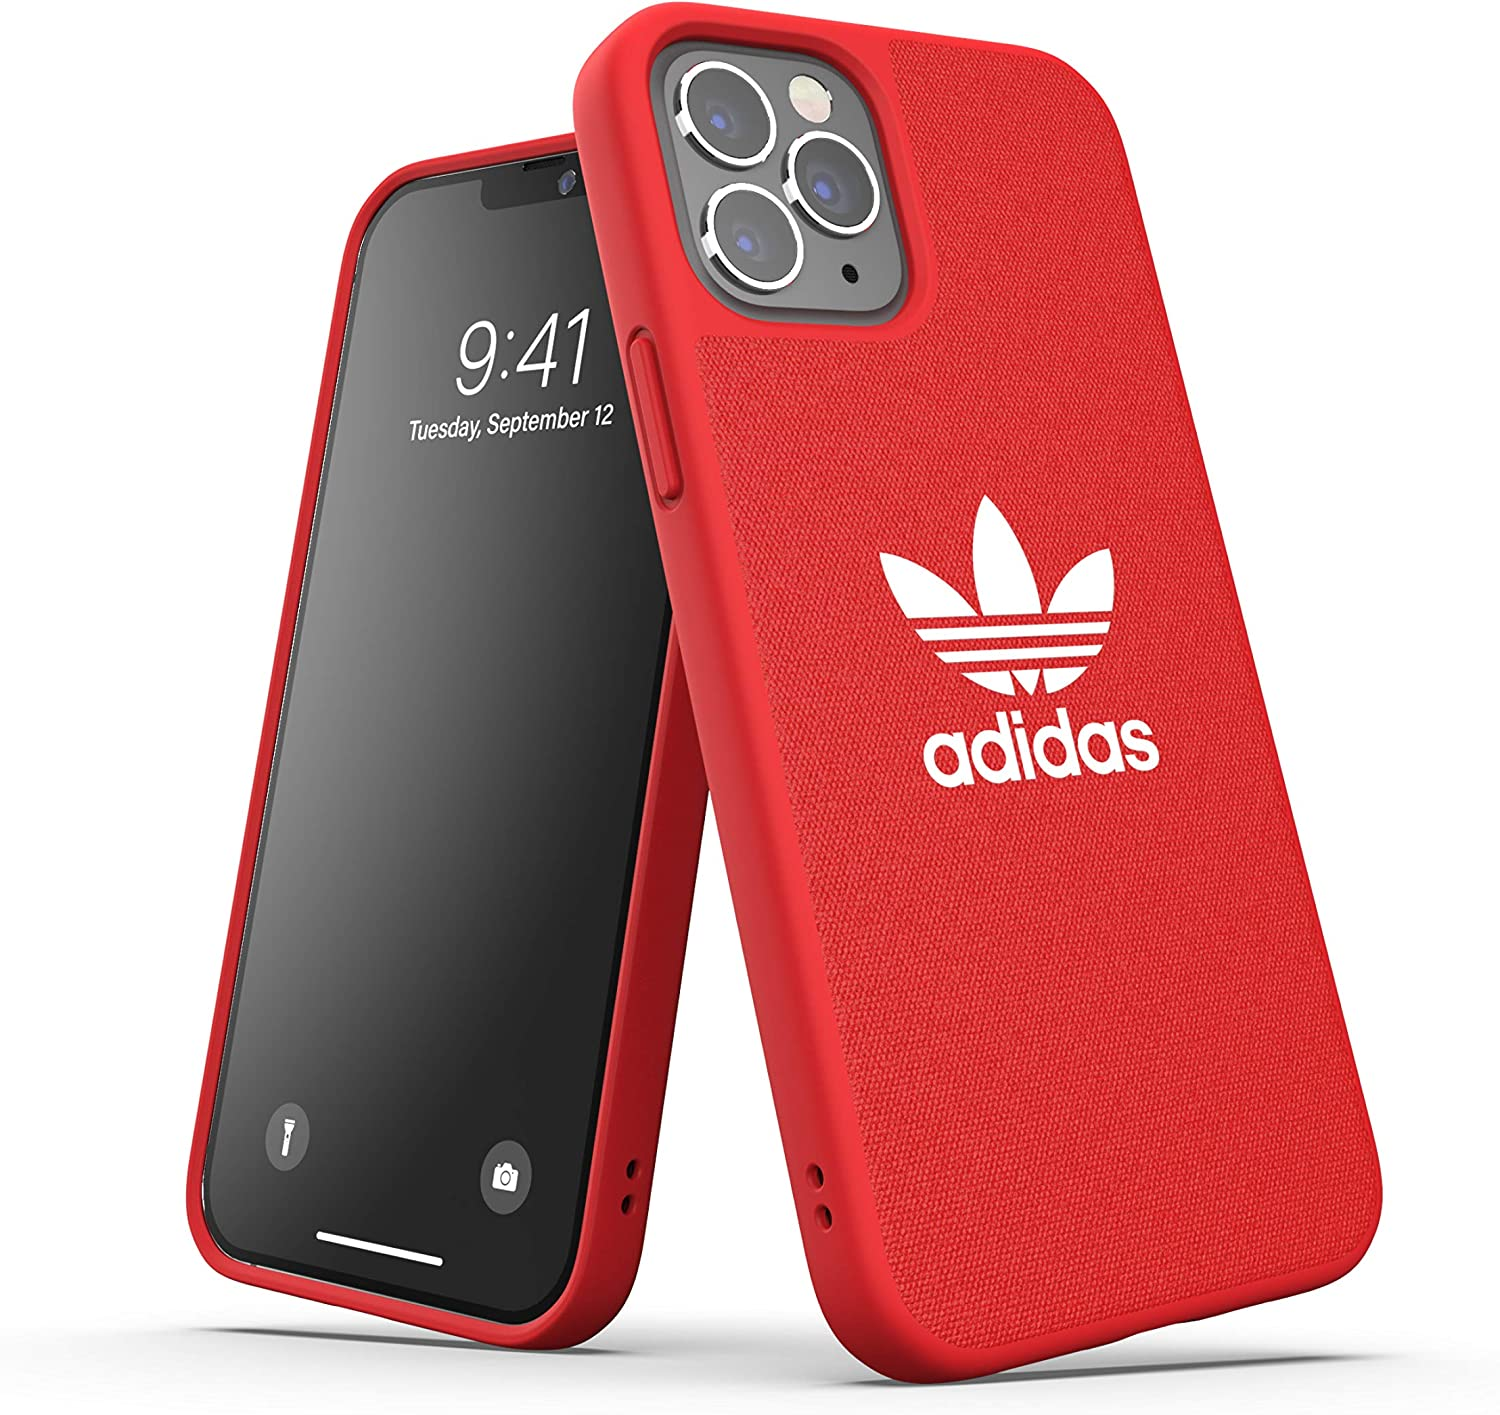 adidas Phone Case Designed for iPhone 12 / iPhone 12 Pro 6.1, Canvas Cover, Drop Tested Cases, Shockproof Raised Edges, Originals Protective Cover, Scartlet